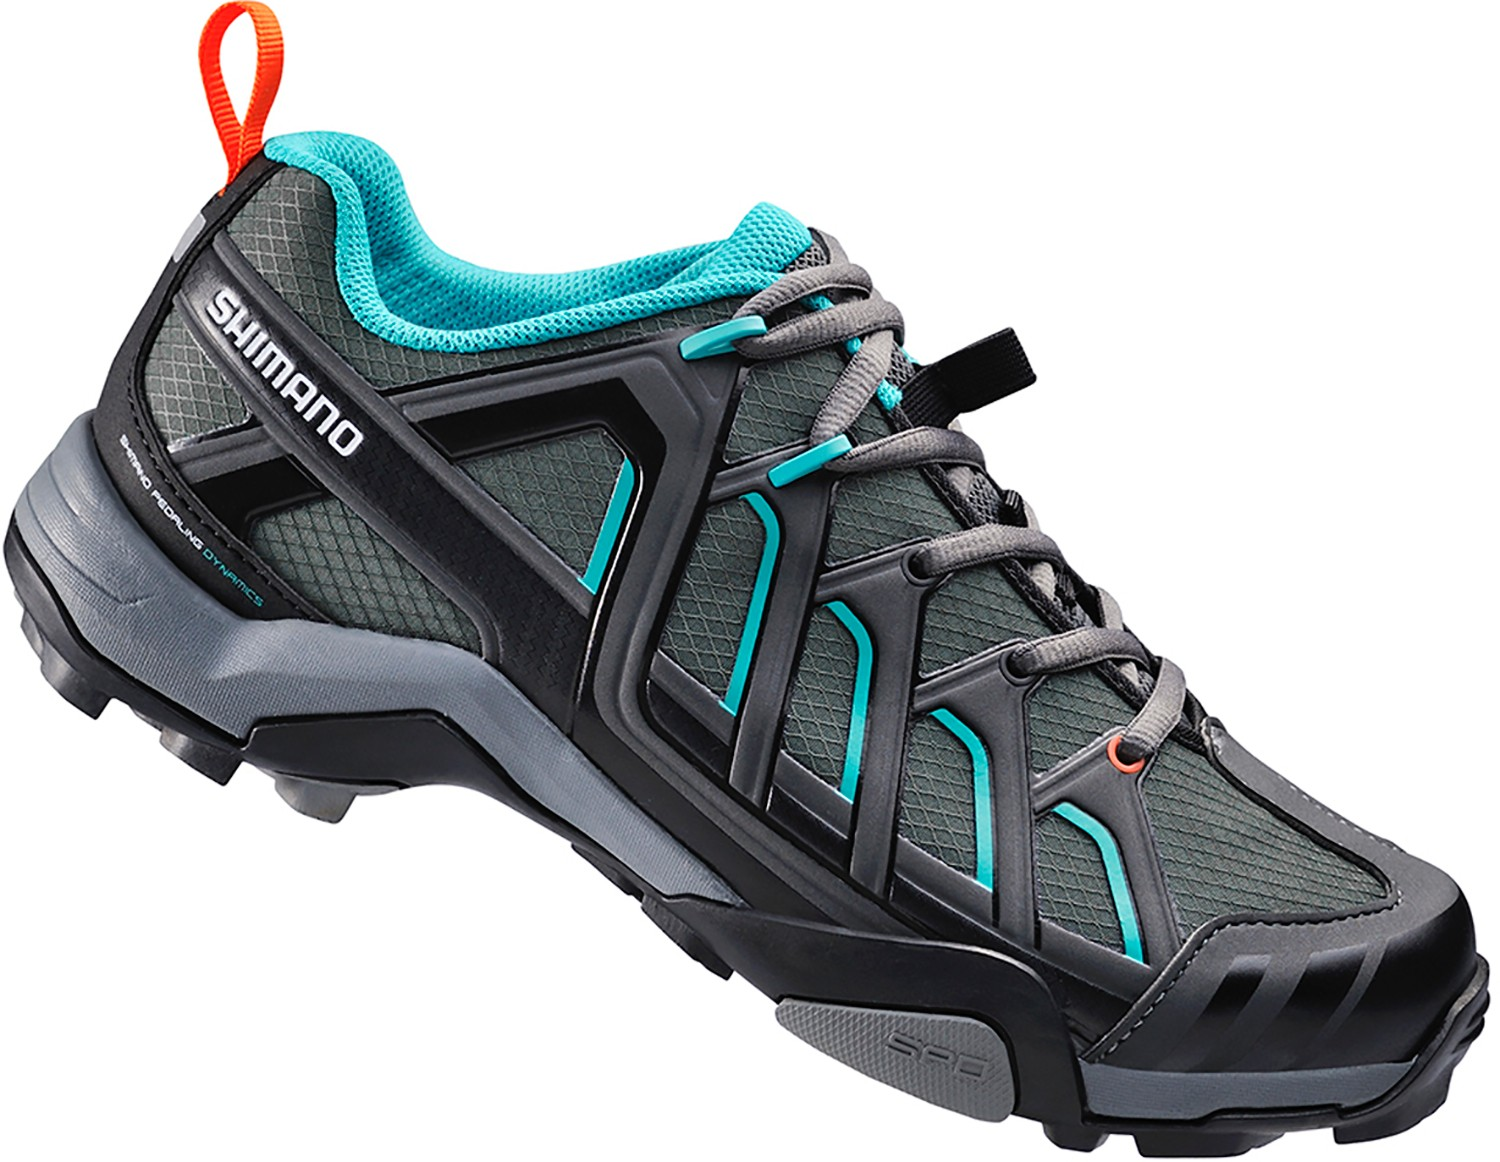 shoe-atb15-specialized-wm34-spd-womens-shoes-psd